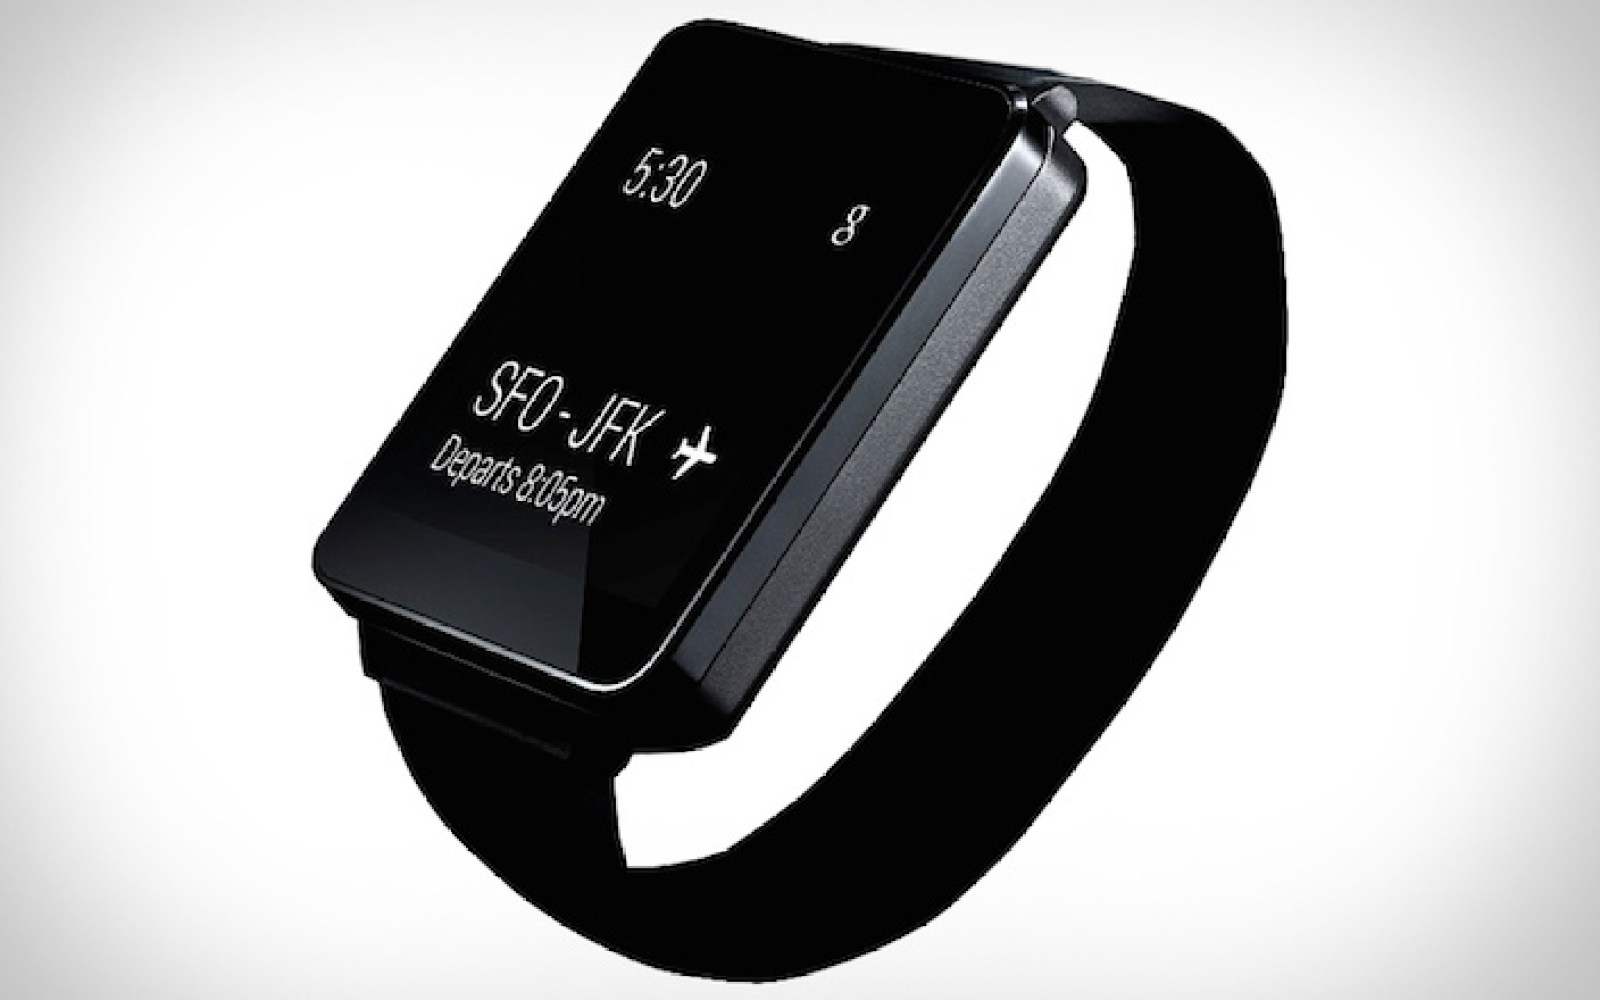 Rumor: The cellular LG G Watch might actually be a real thing, but only in Korea